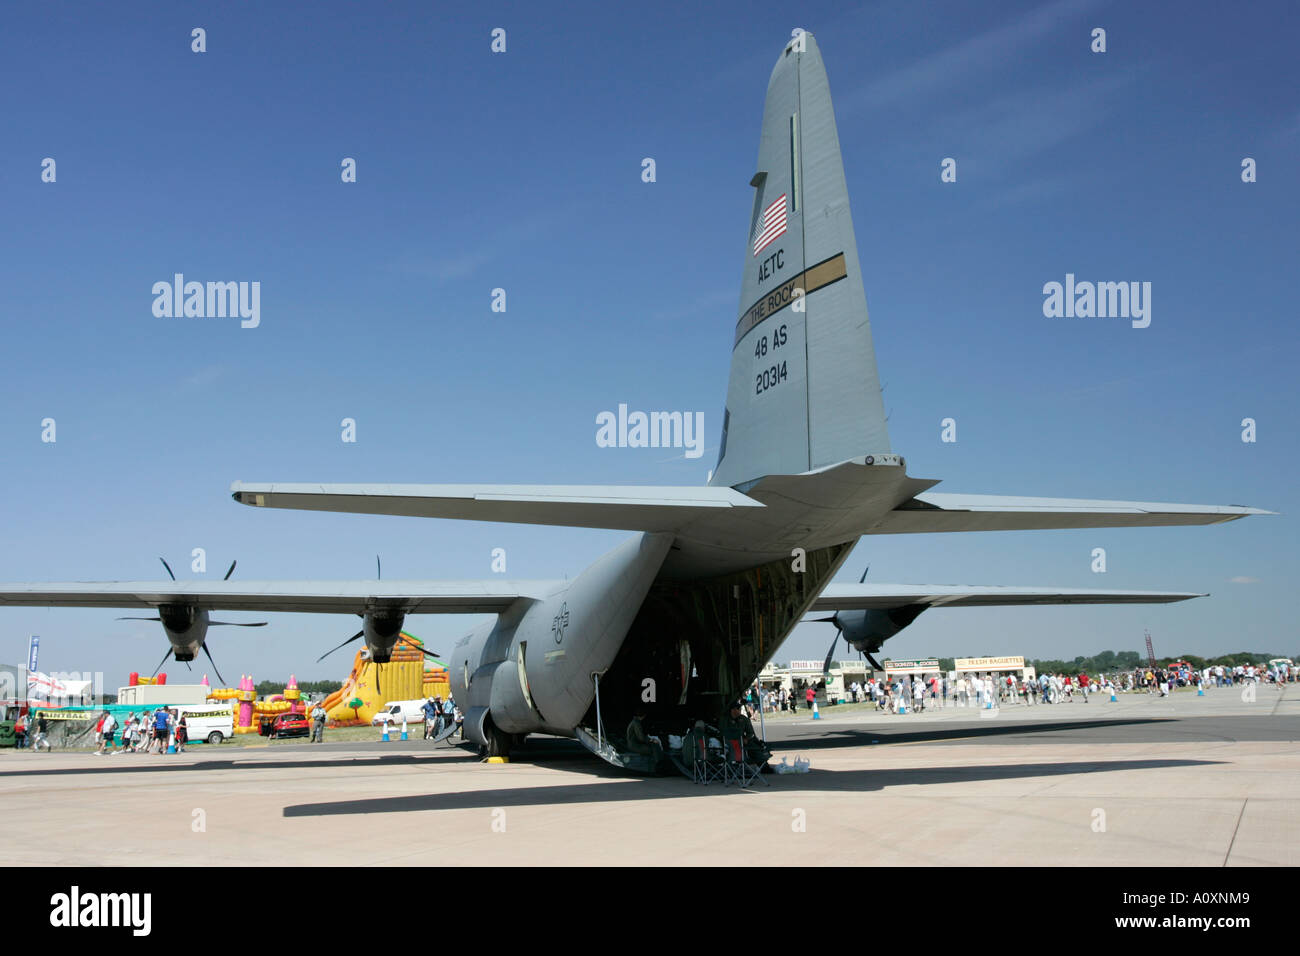 Rear cargo ramp of United States Air Force AETC CC 130J Hercules aircraft RIAT 2005 RAF Fairford Gloucestershire England UK - Stock Image